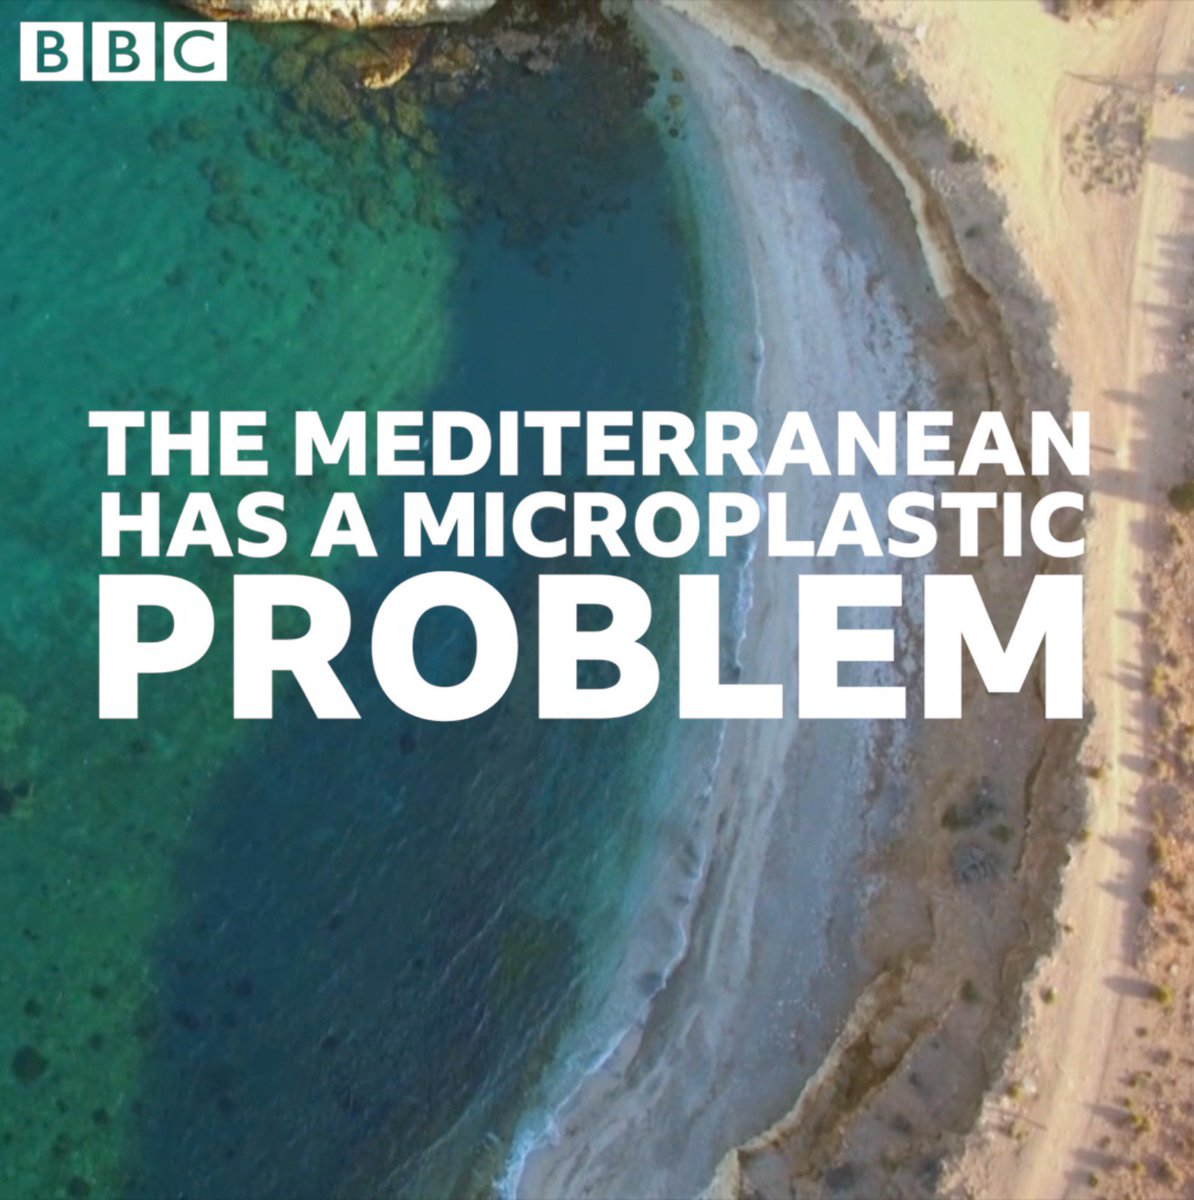 RT @BBCOne: .@Simon_Reeve explores the problem of plastic in the Mediterranean. This is shocking.   Via @BBC Two. https://t.co/qhzbH8hmTP